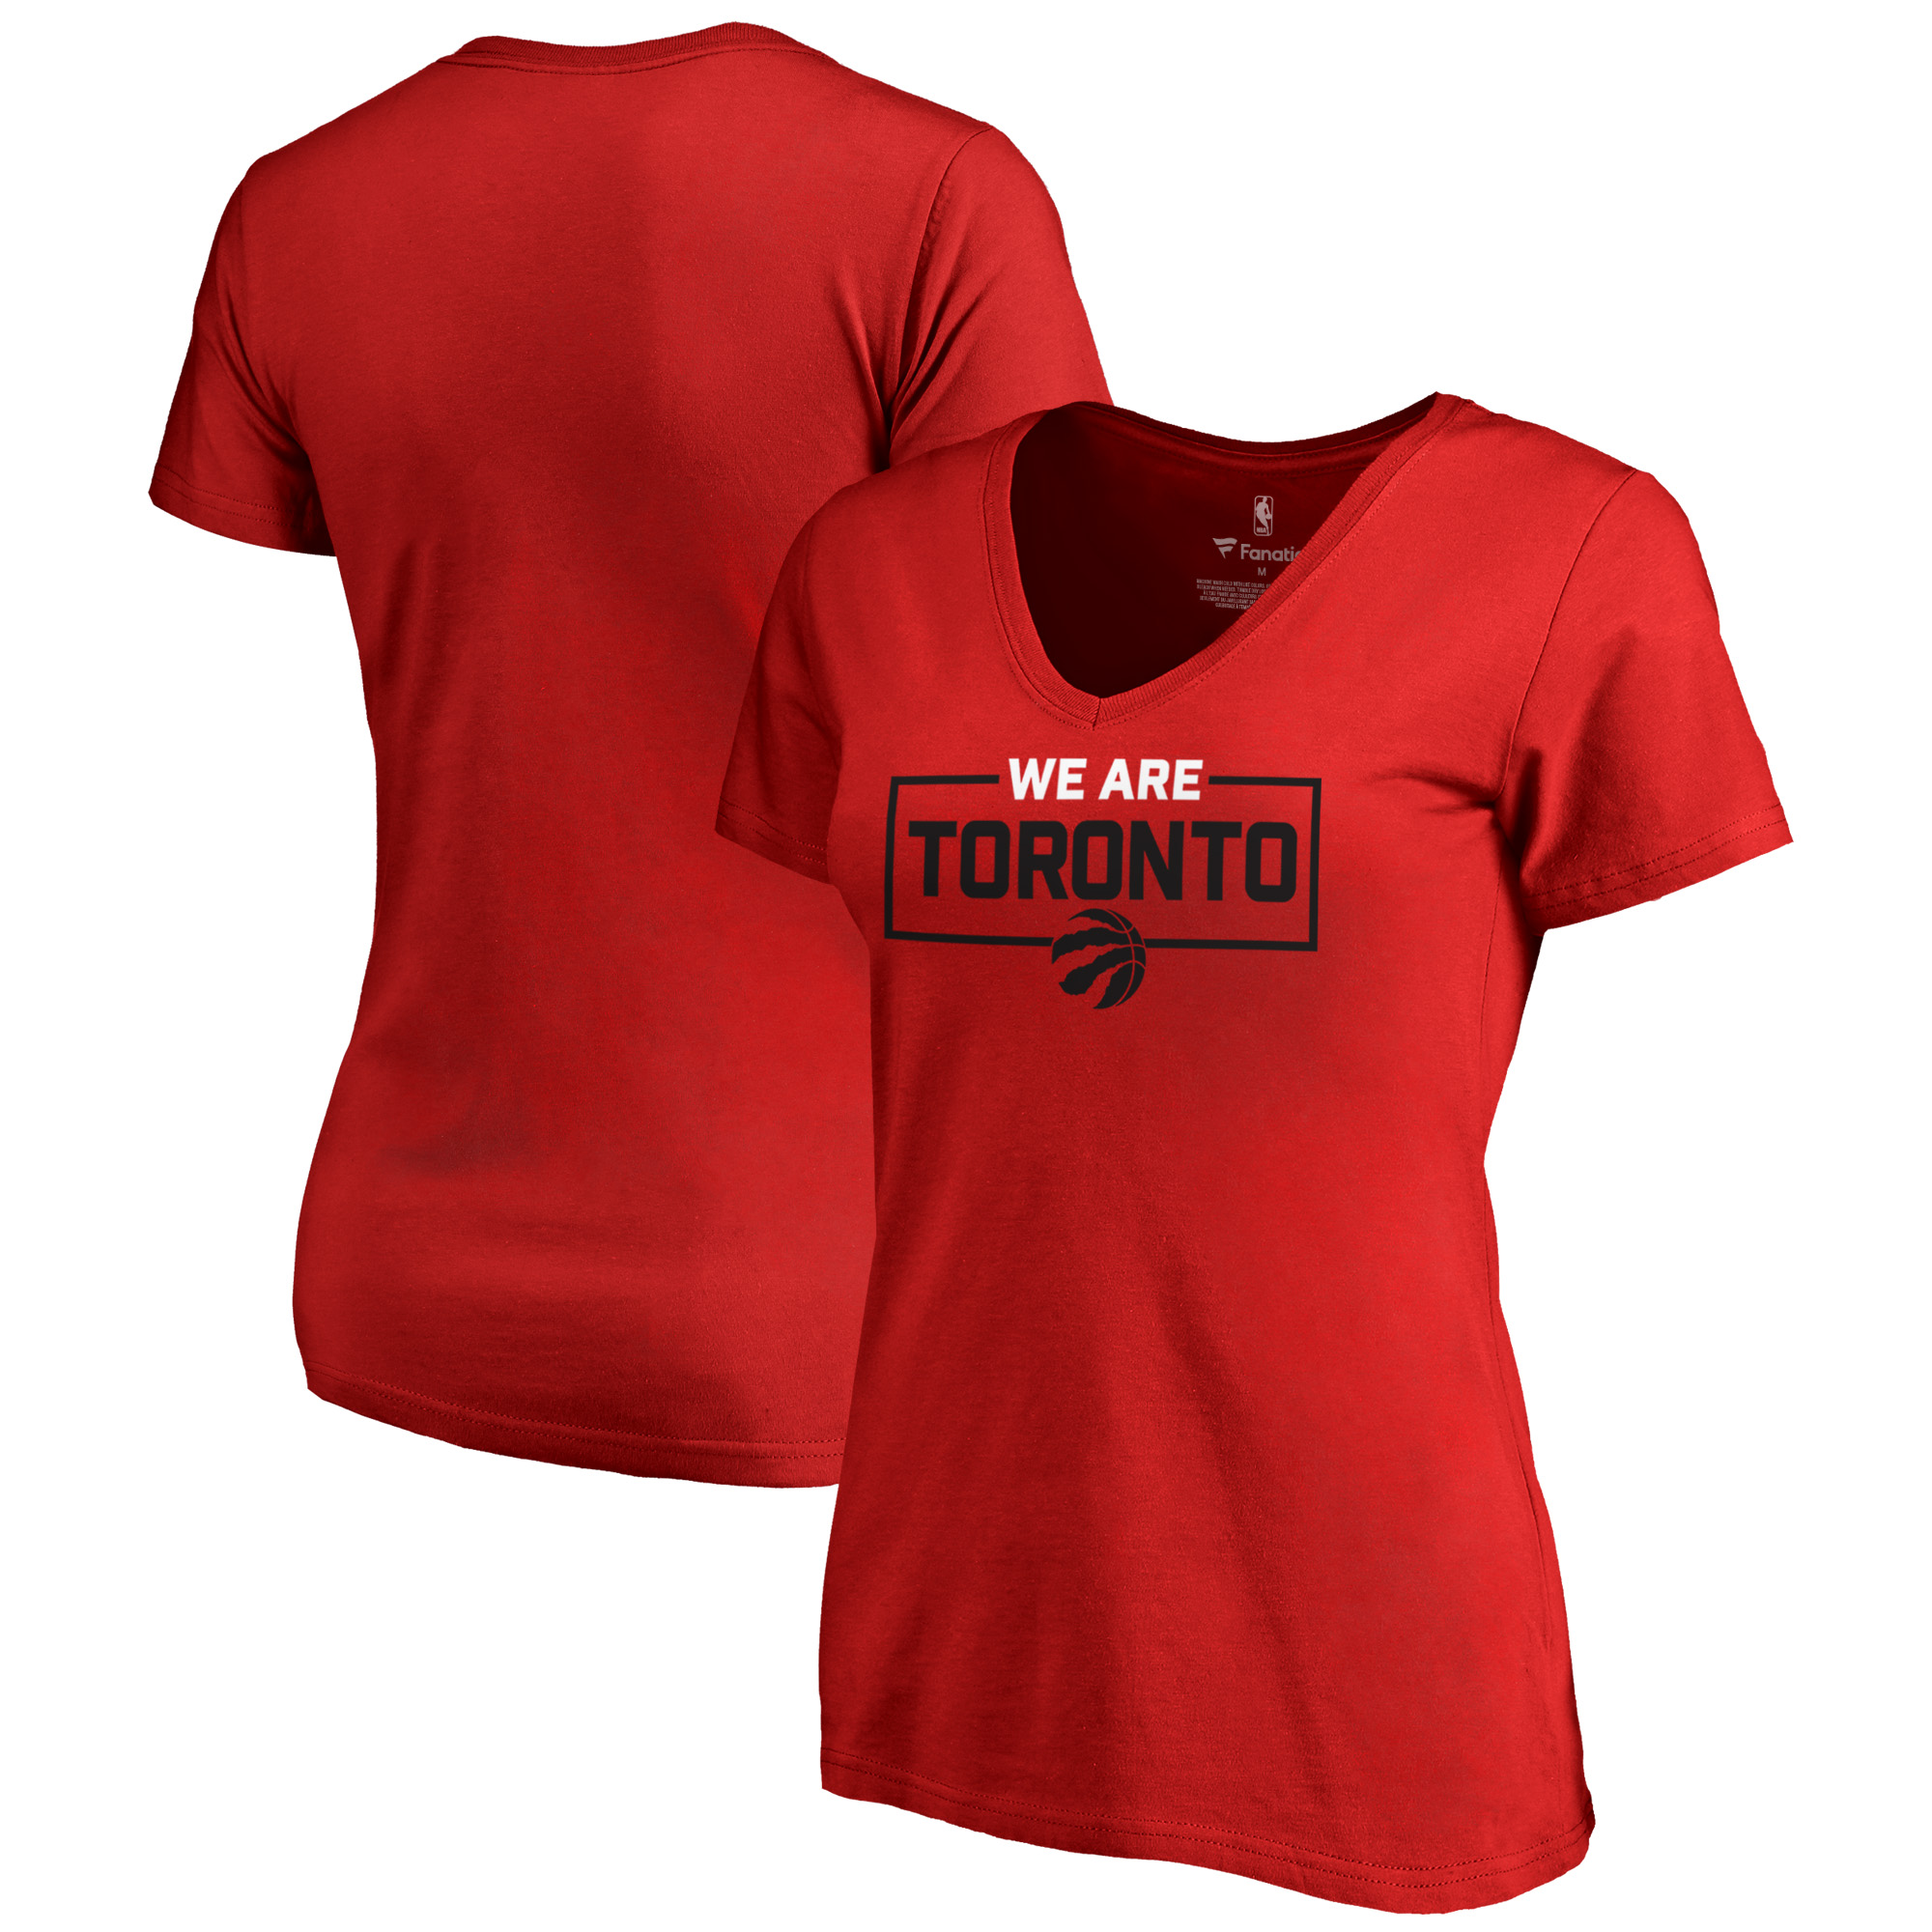 Toronto Raptors Fanatics Branded Women's We Are Iconic Collection V-Neck T-Shirt - Red